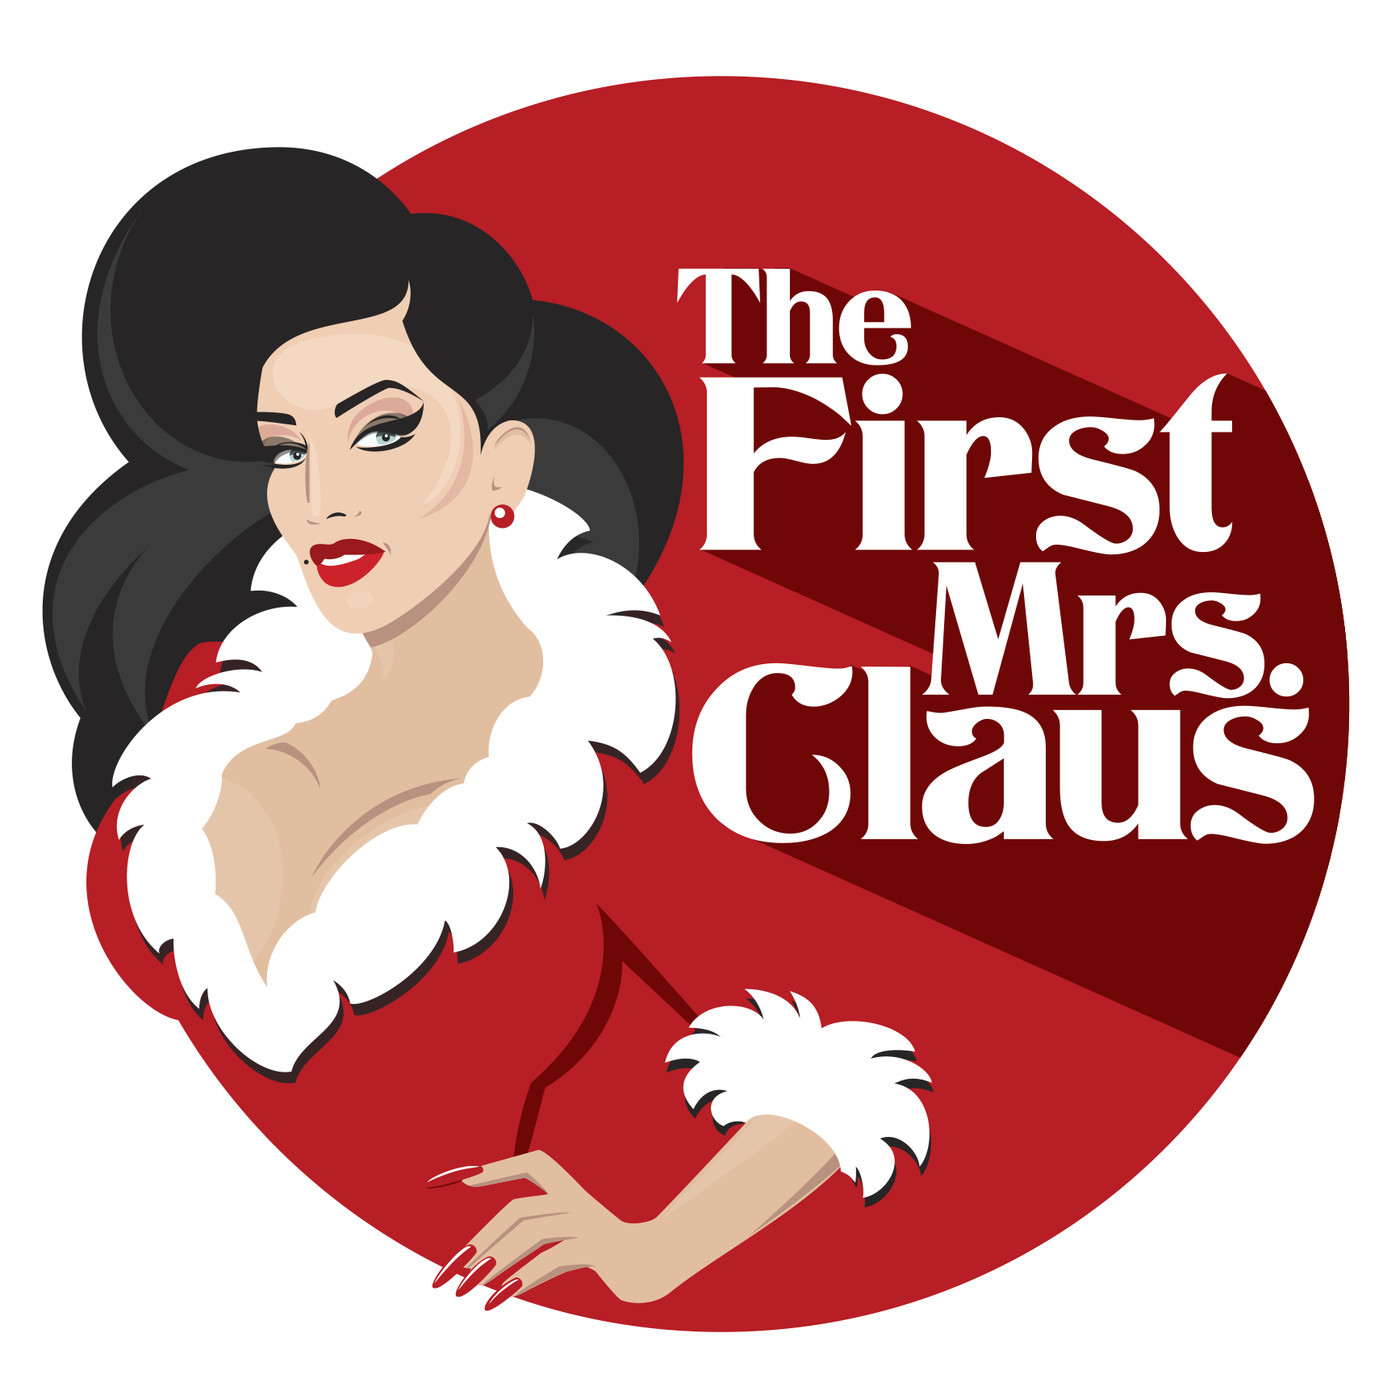 Debut of The First Mrs. Claus